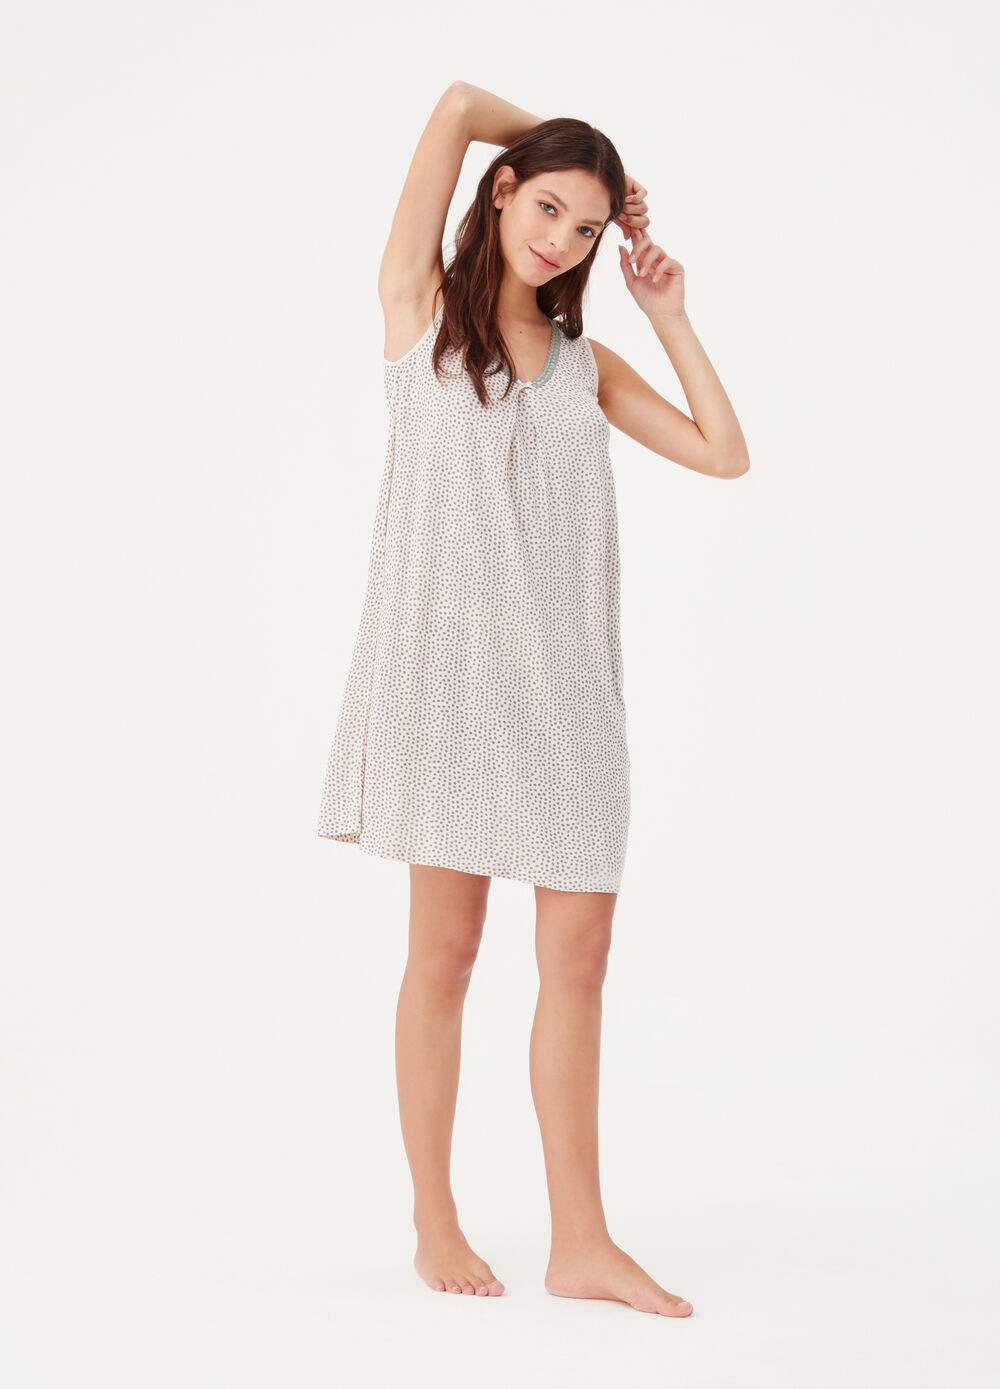 Polka dot sleeveless nightshirt